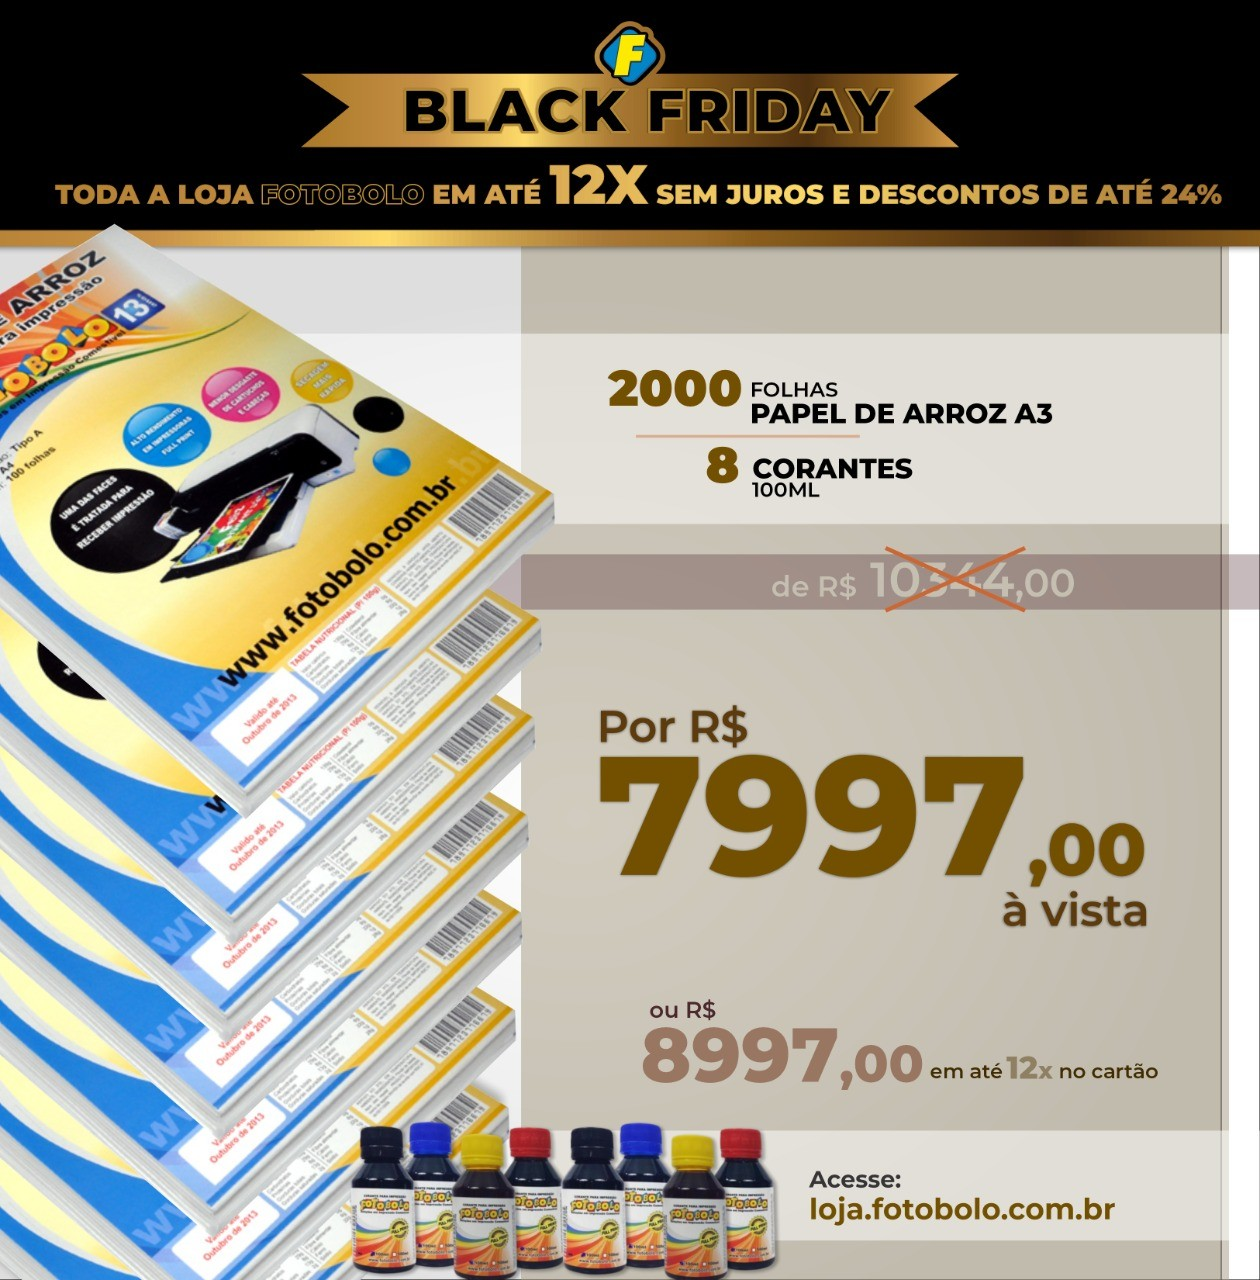 COMBO BLACK FRIDAY - 2000 Papéis Arroz TIPO A A3 + 2 Kits Corante 100ml (8 frascos + 8 bicos)